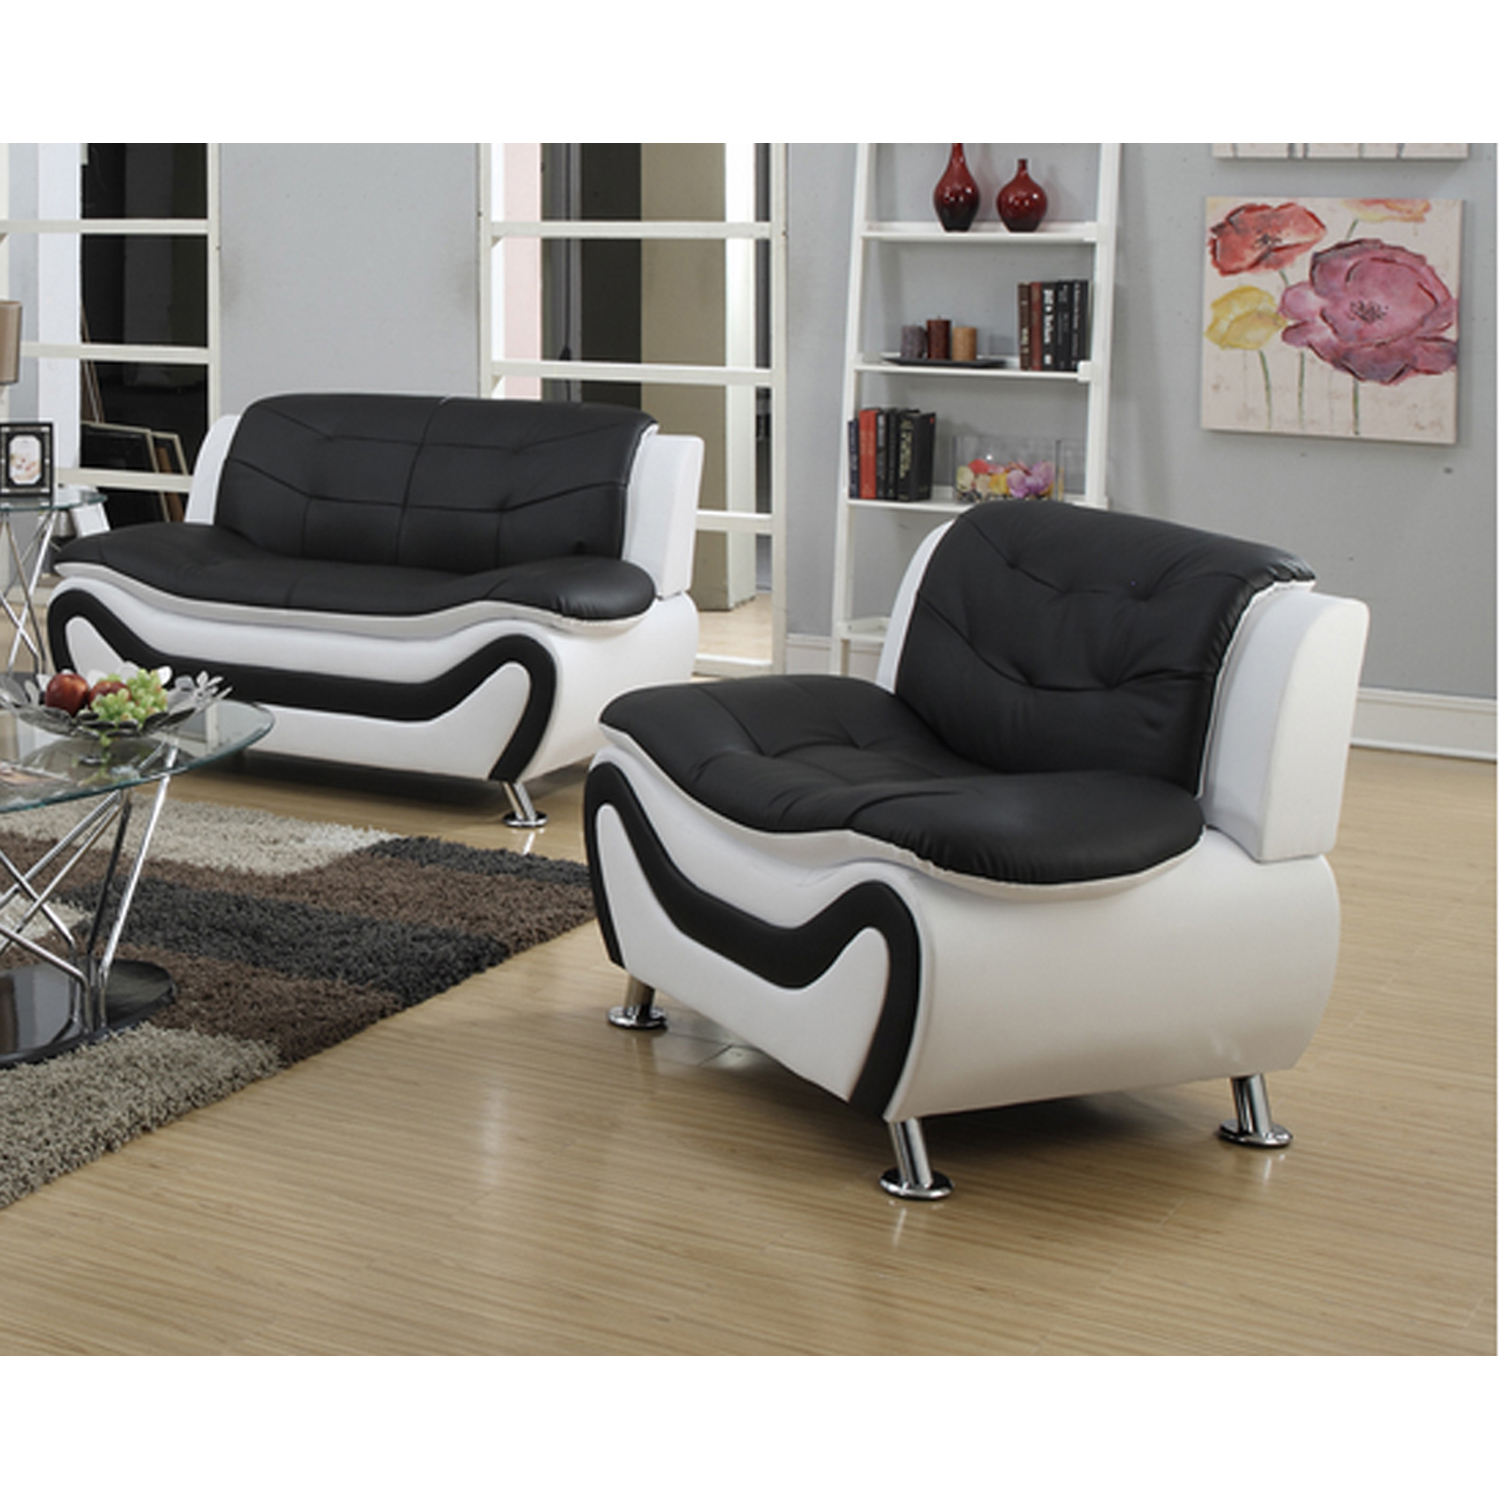 Frady Black and White Faux Leather Modern Living Room Loveseat and Chair Set